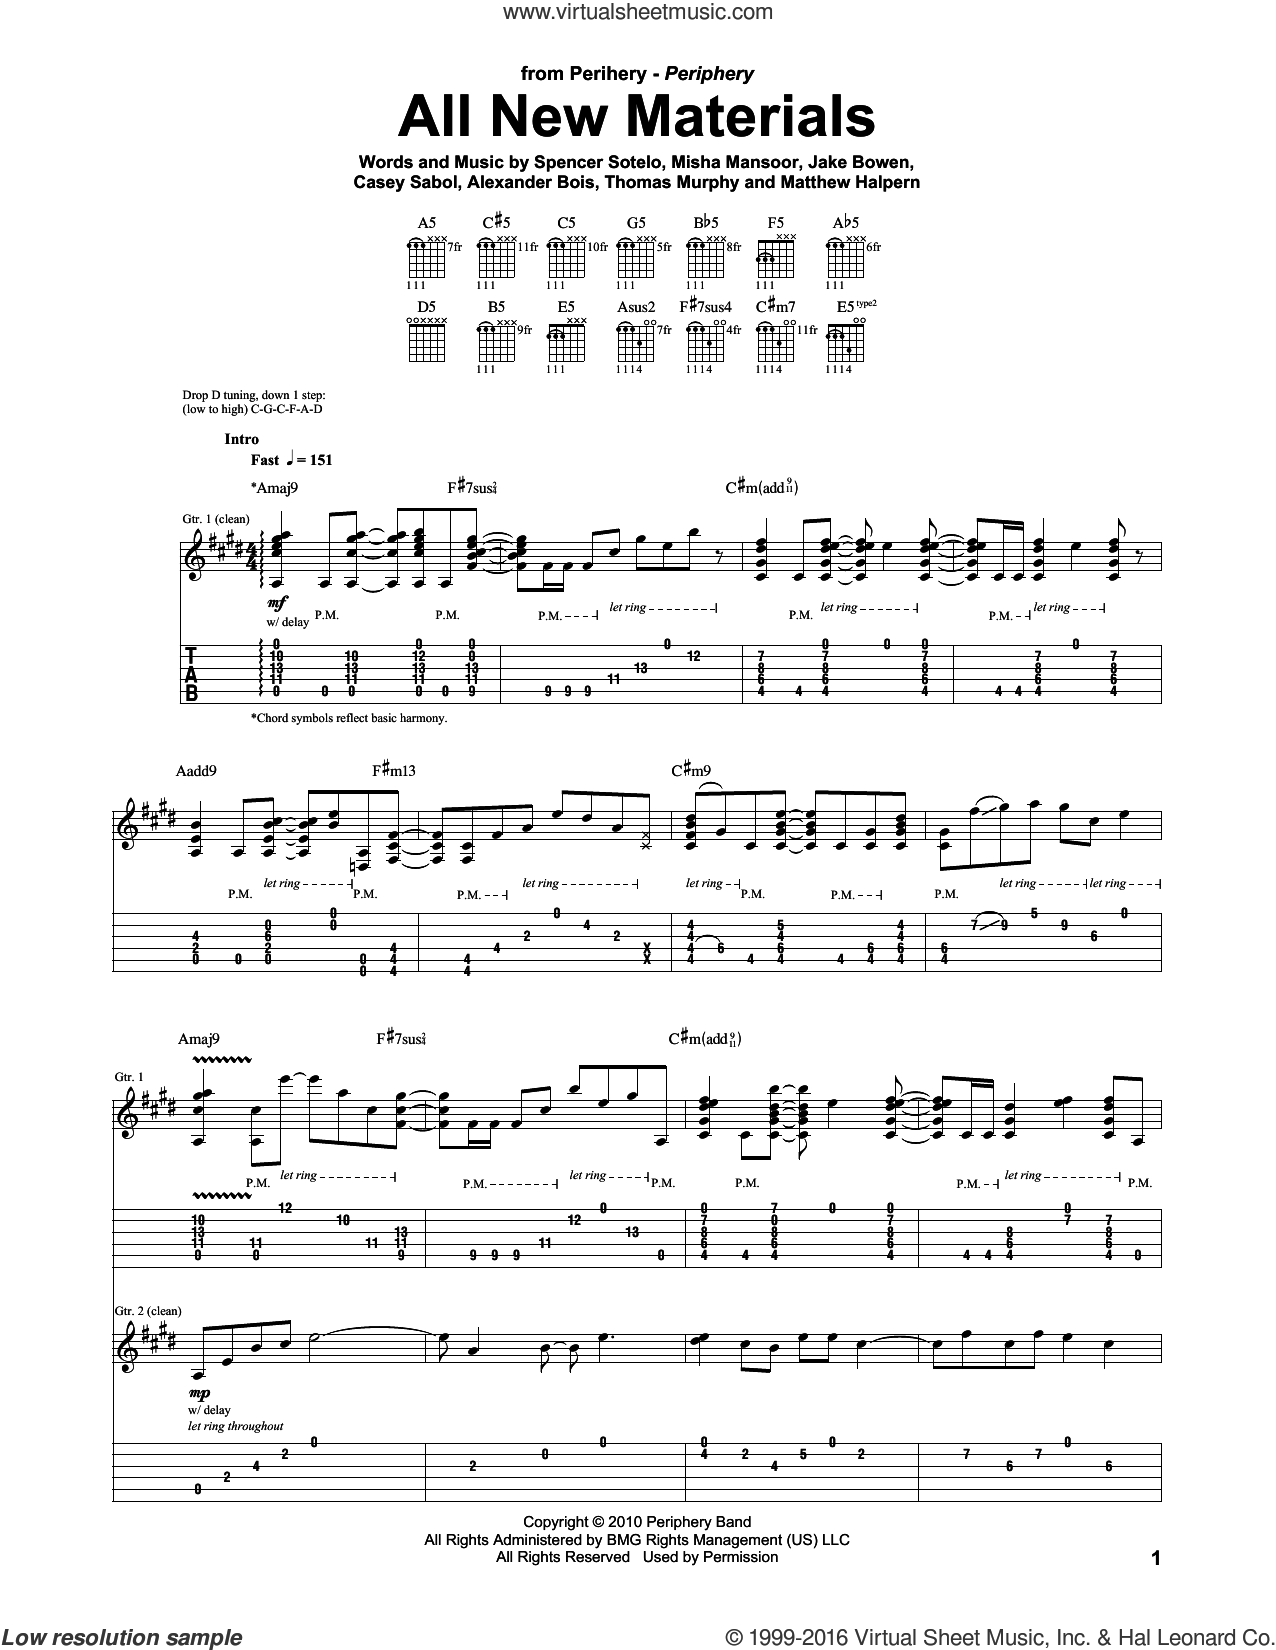 All New Materials sheet music for guitar (tablature) by Thomas Murphy